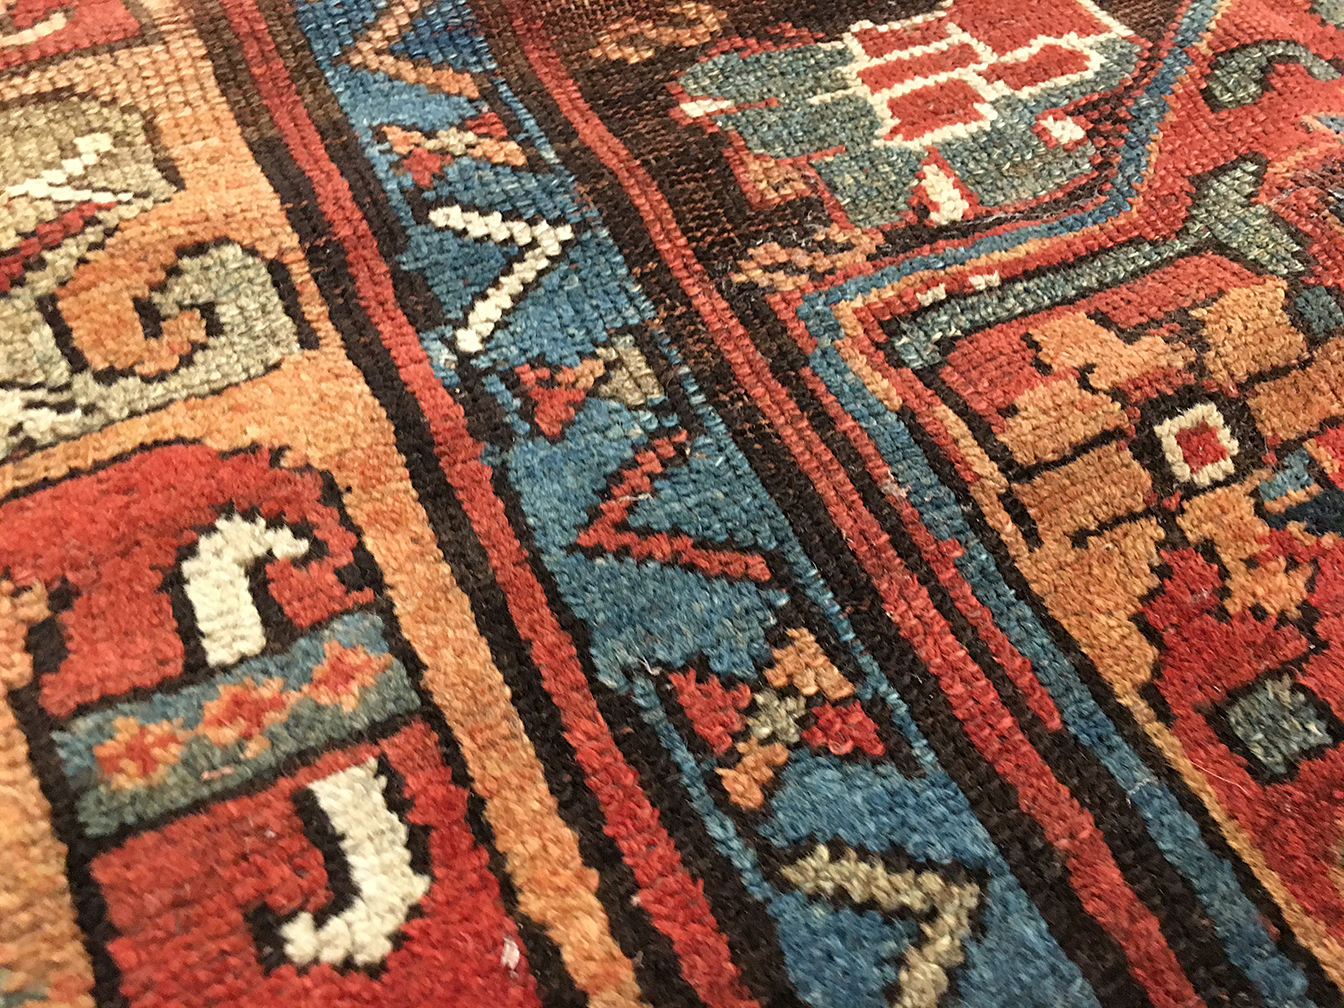 Antique kurdish Rug - # 80009